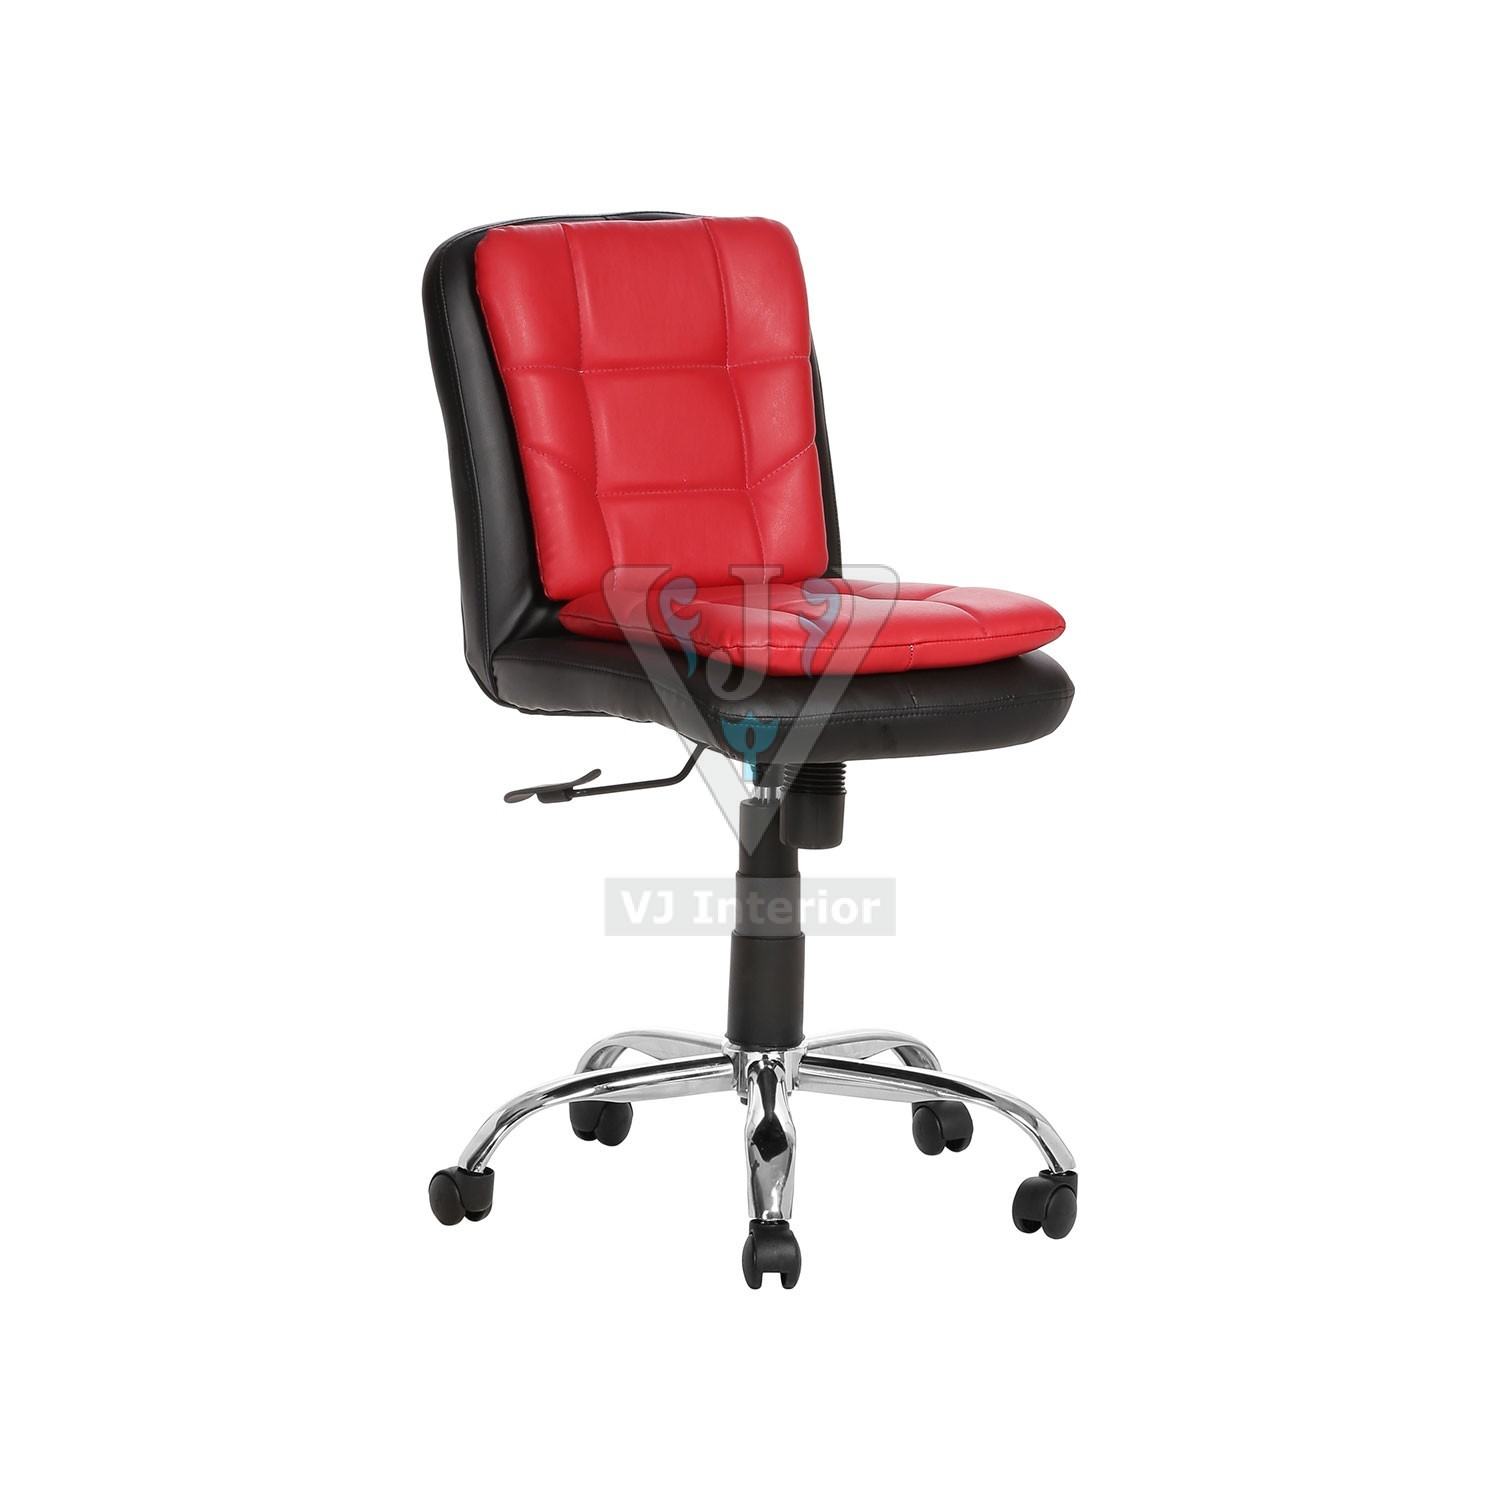 red and black chair rolling bath chairs elderly the libranejar lb workstaion vj interior